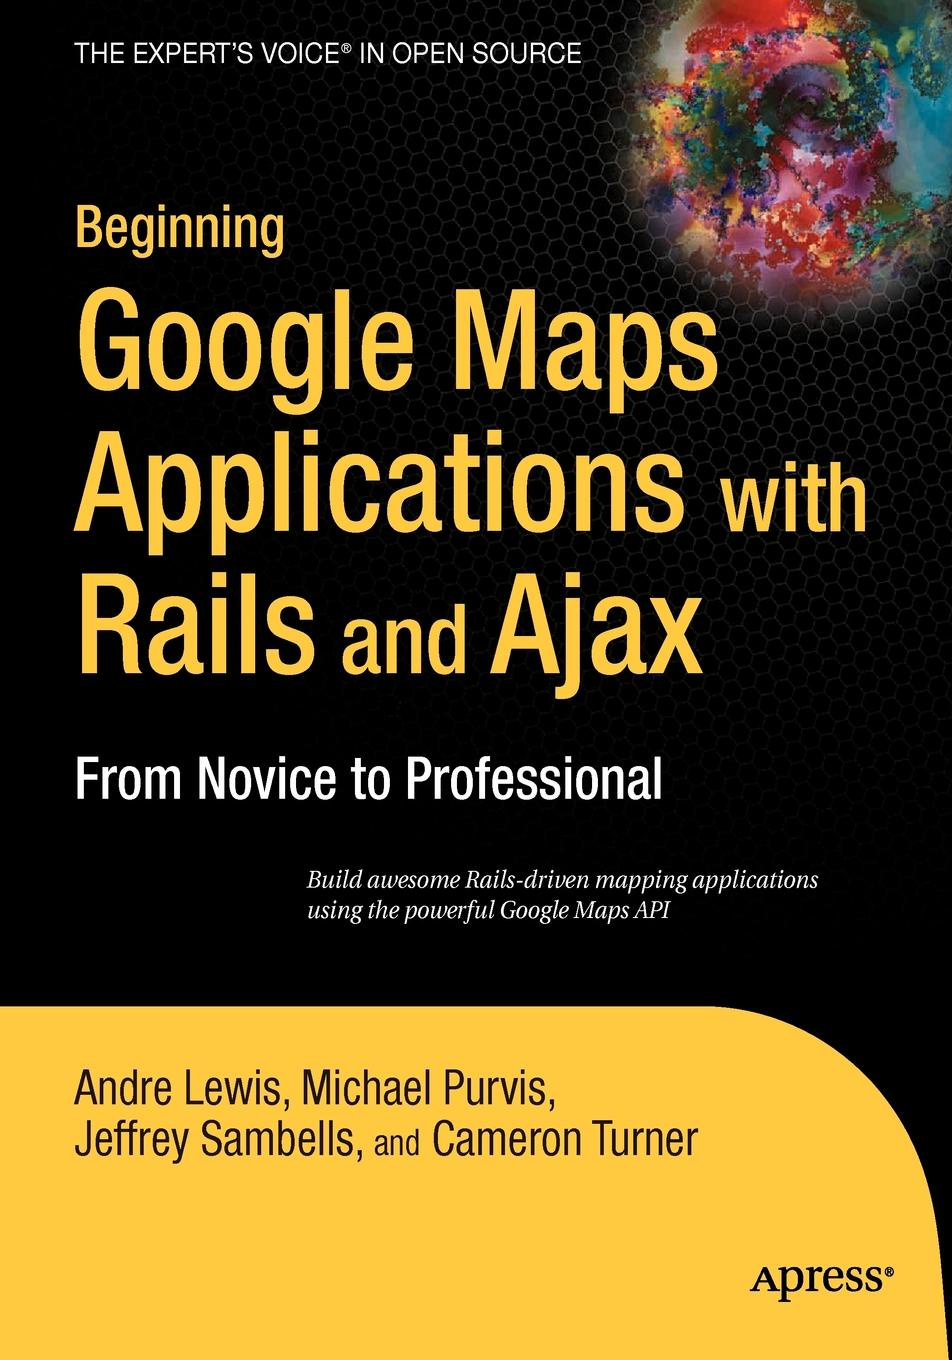 Andre Lewis, Michael Purvis, Jeffrey Sambells Beginning Google Maps Applications with Rails and Ajax. From Novice to Professional laurence moroney beginning web development silverlight and asp net ajax from novice to professional